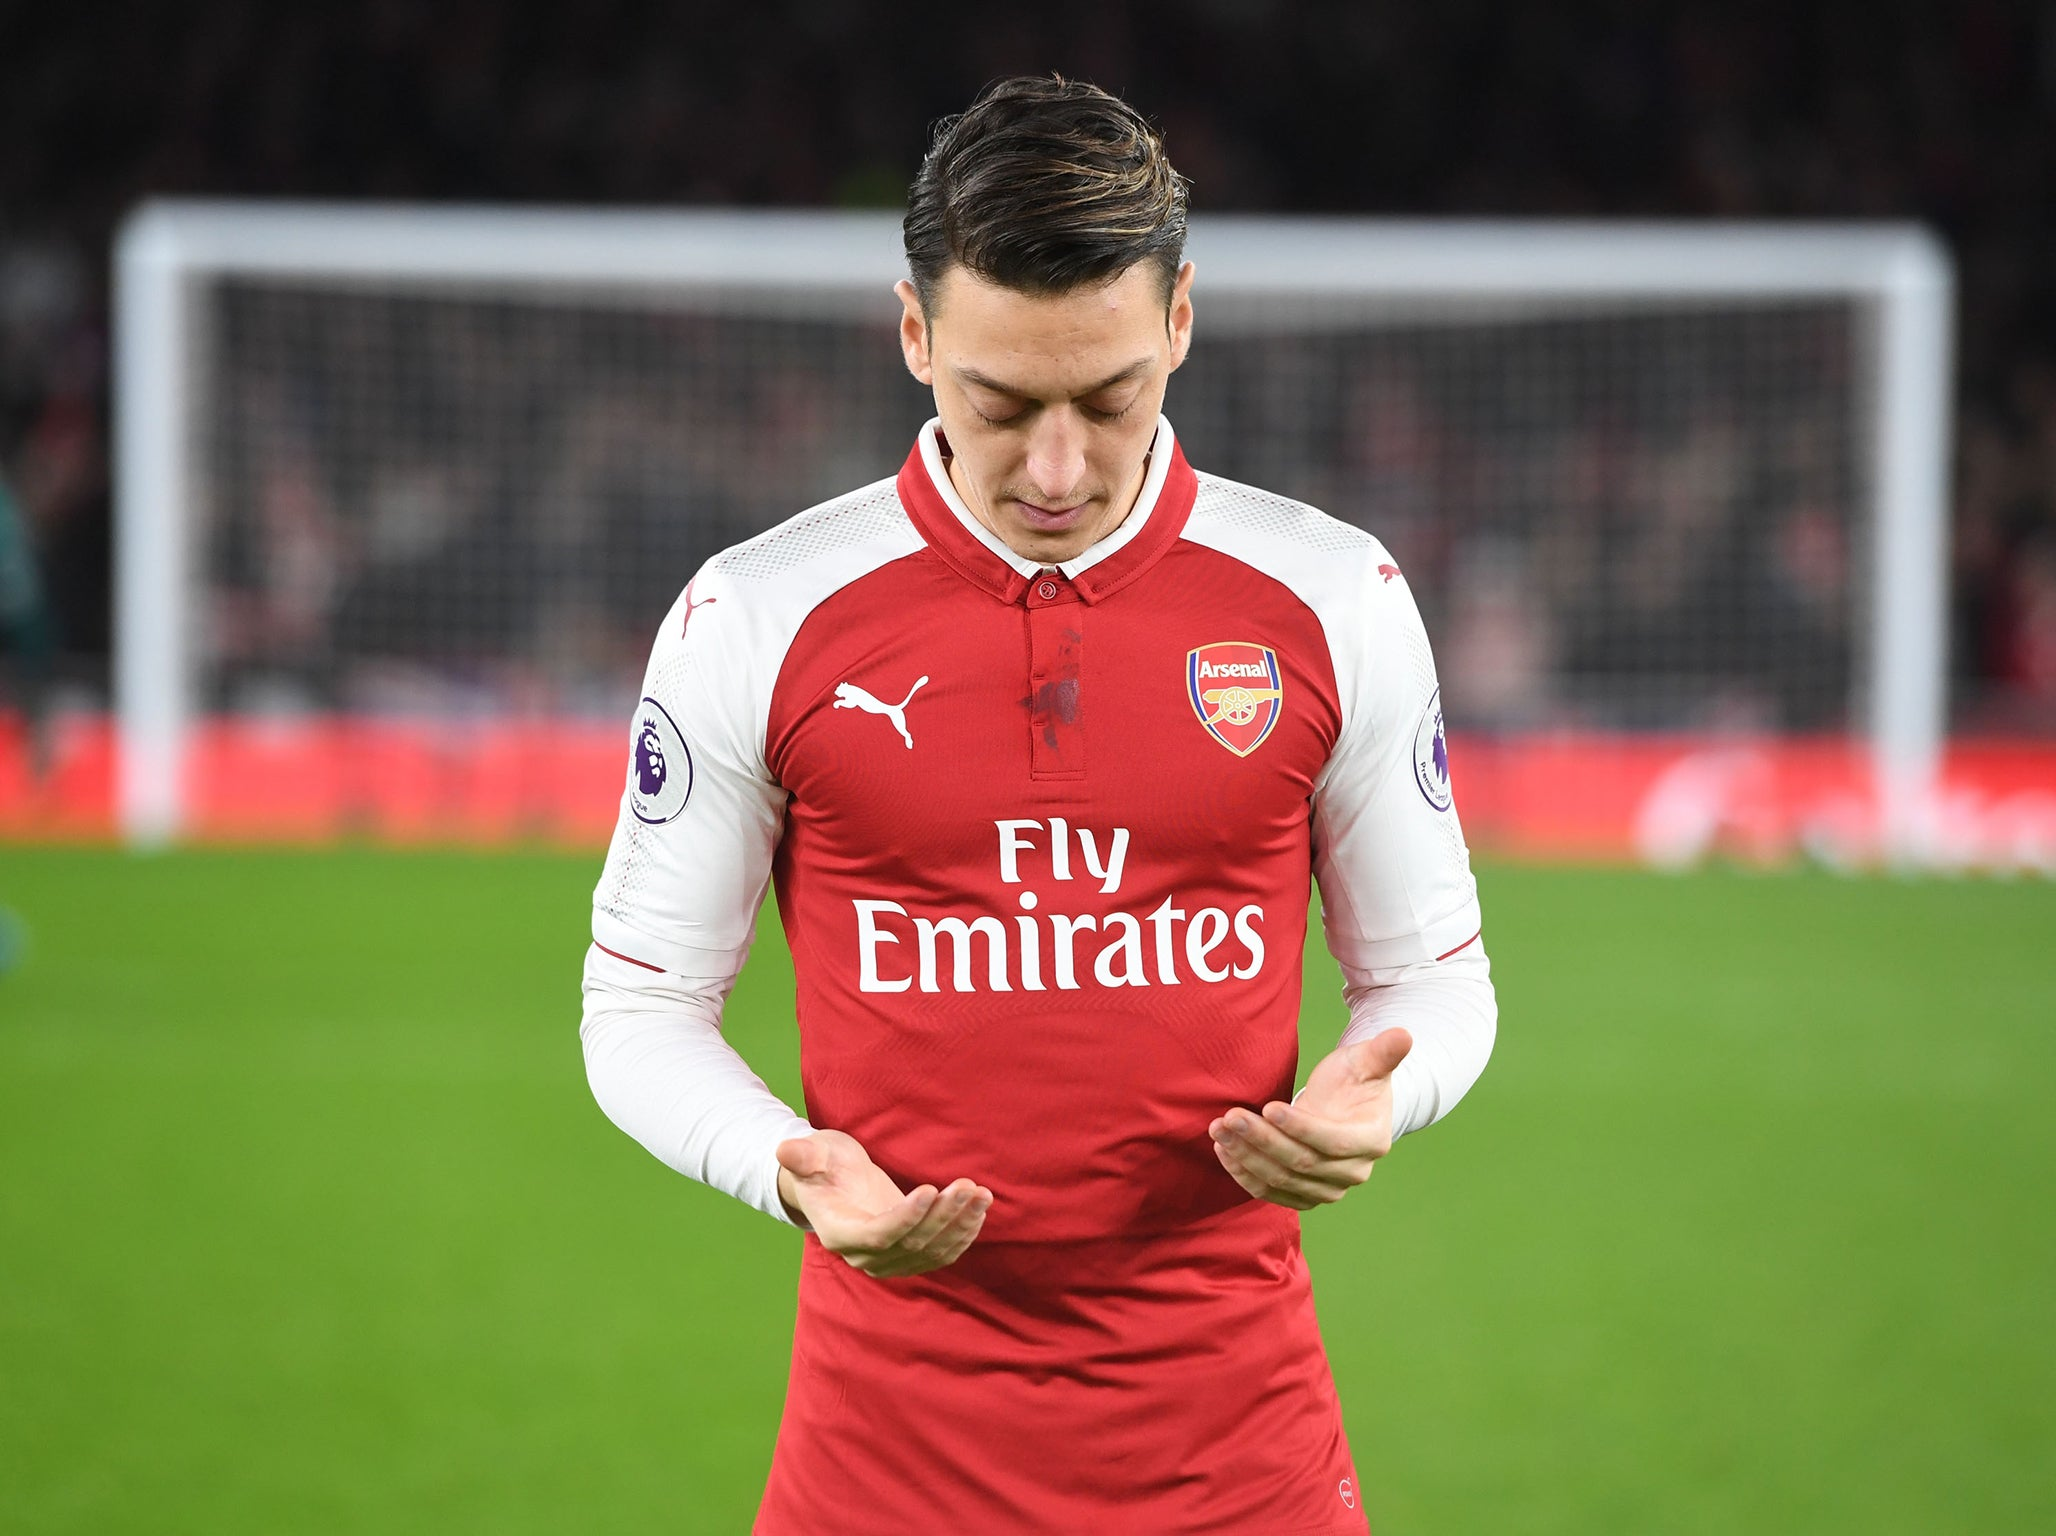 """To the glorious believers who are fighting alone"" — Four sobering takeaways from Mesut Özil's voice out."